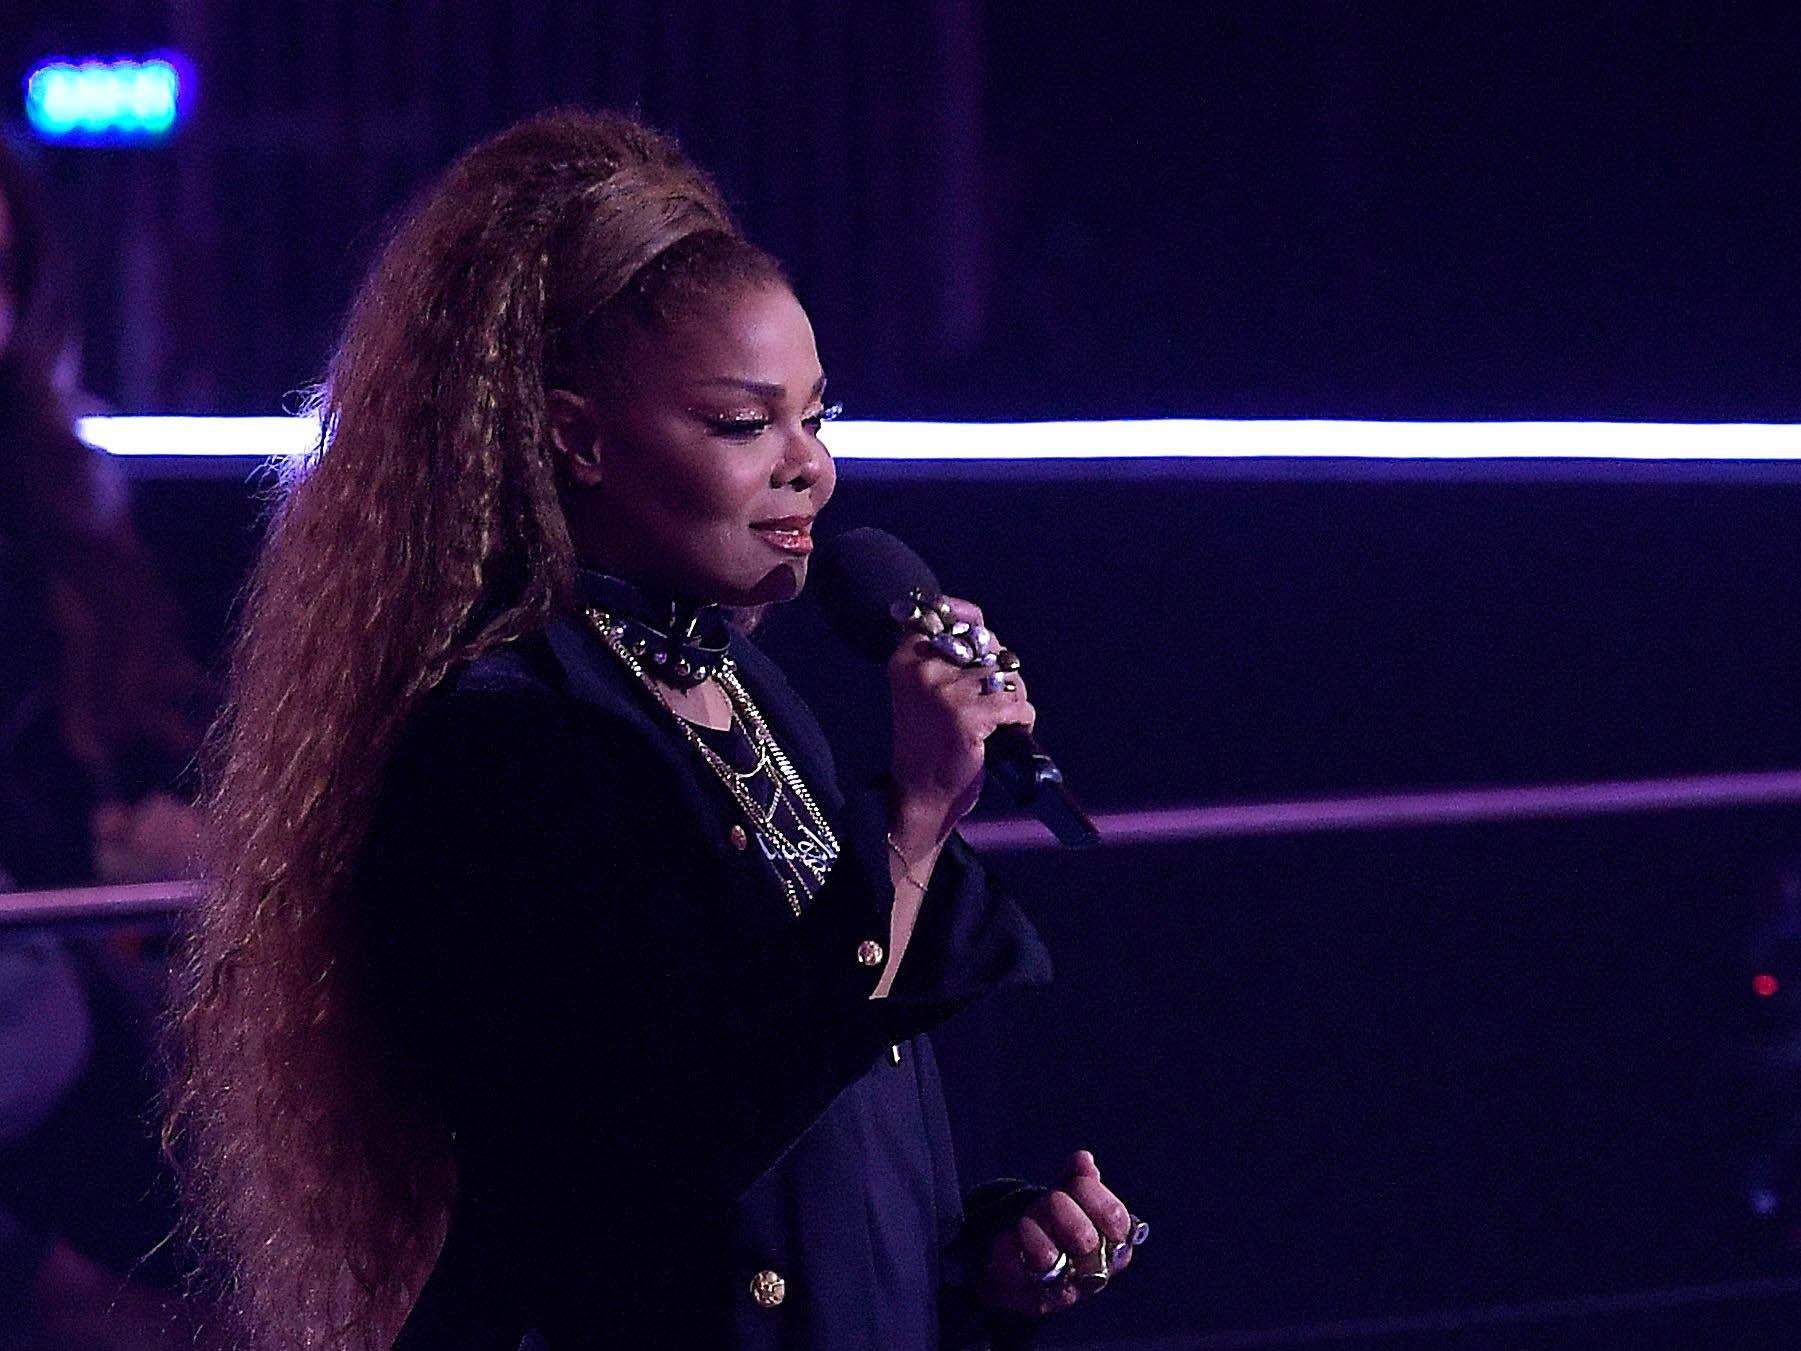 Ð?аÑ?Ñ?инки по запÑ?осÑ? Janet Jackson called for an end to gender inequality during a powerful speech